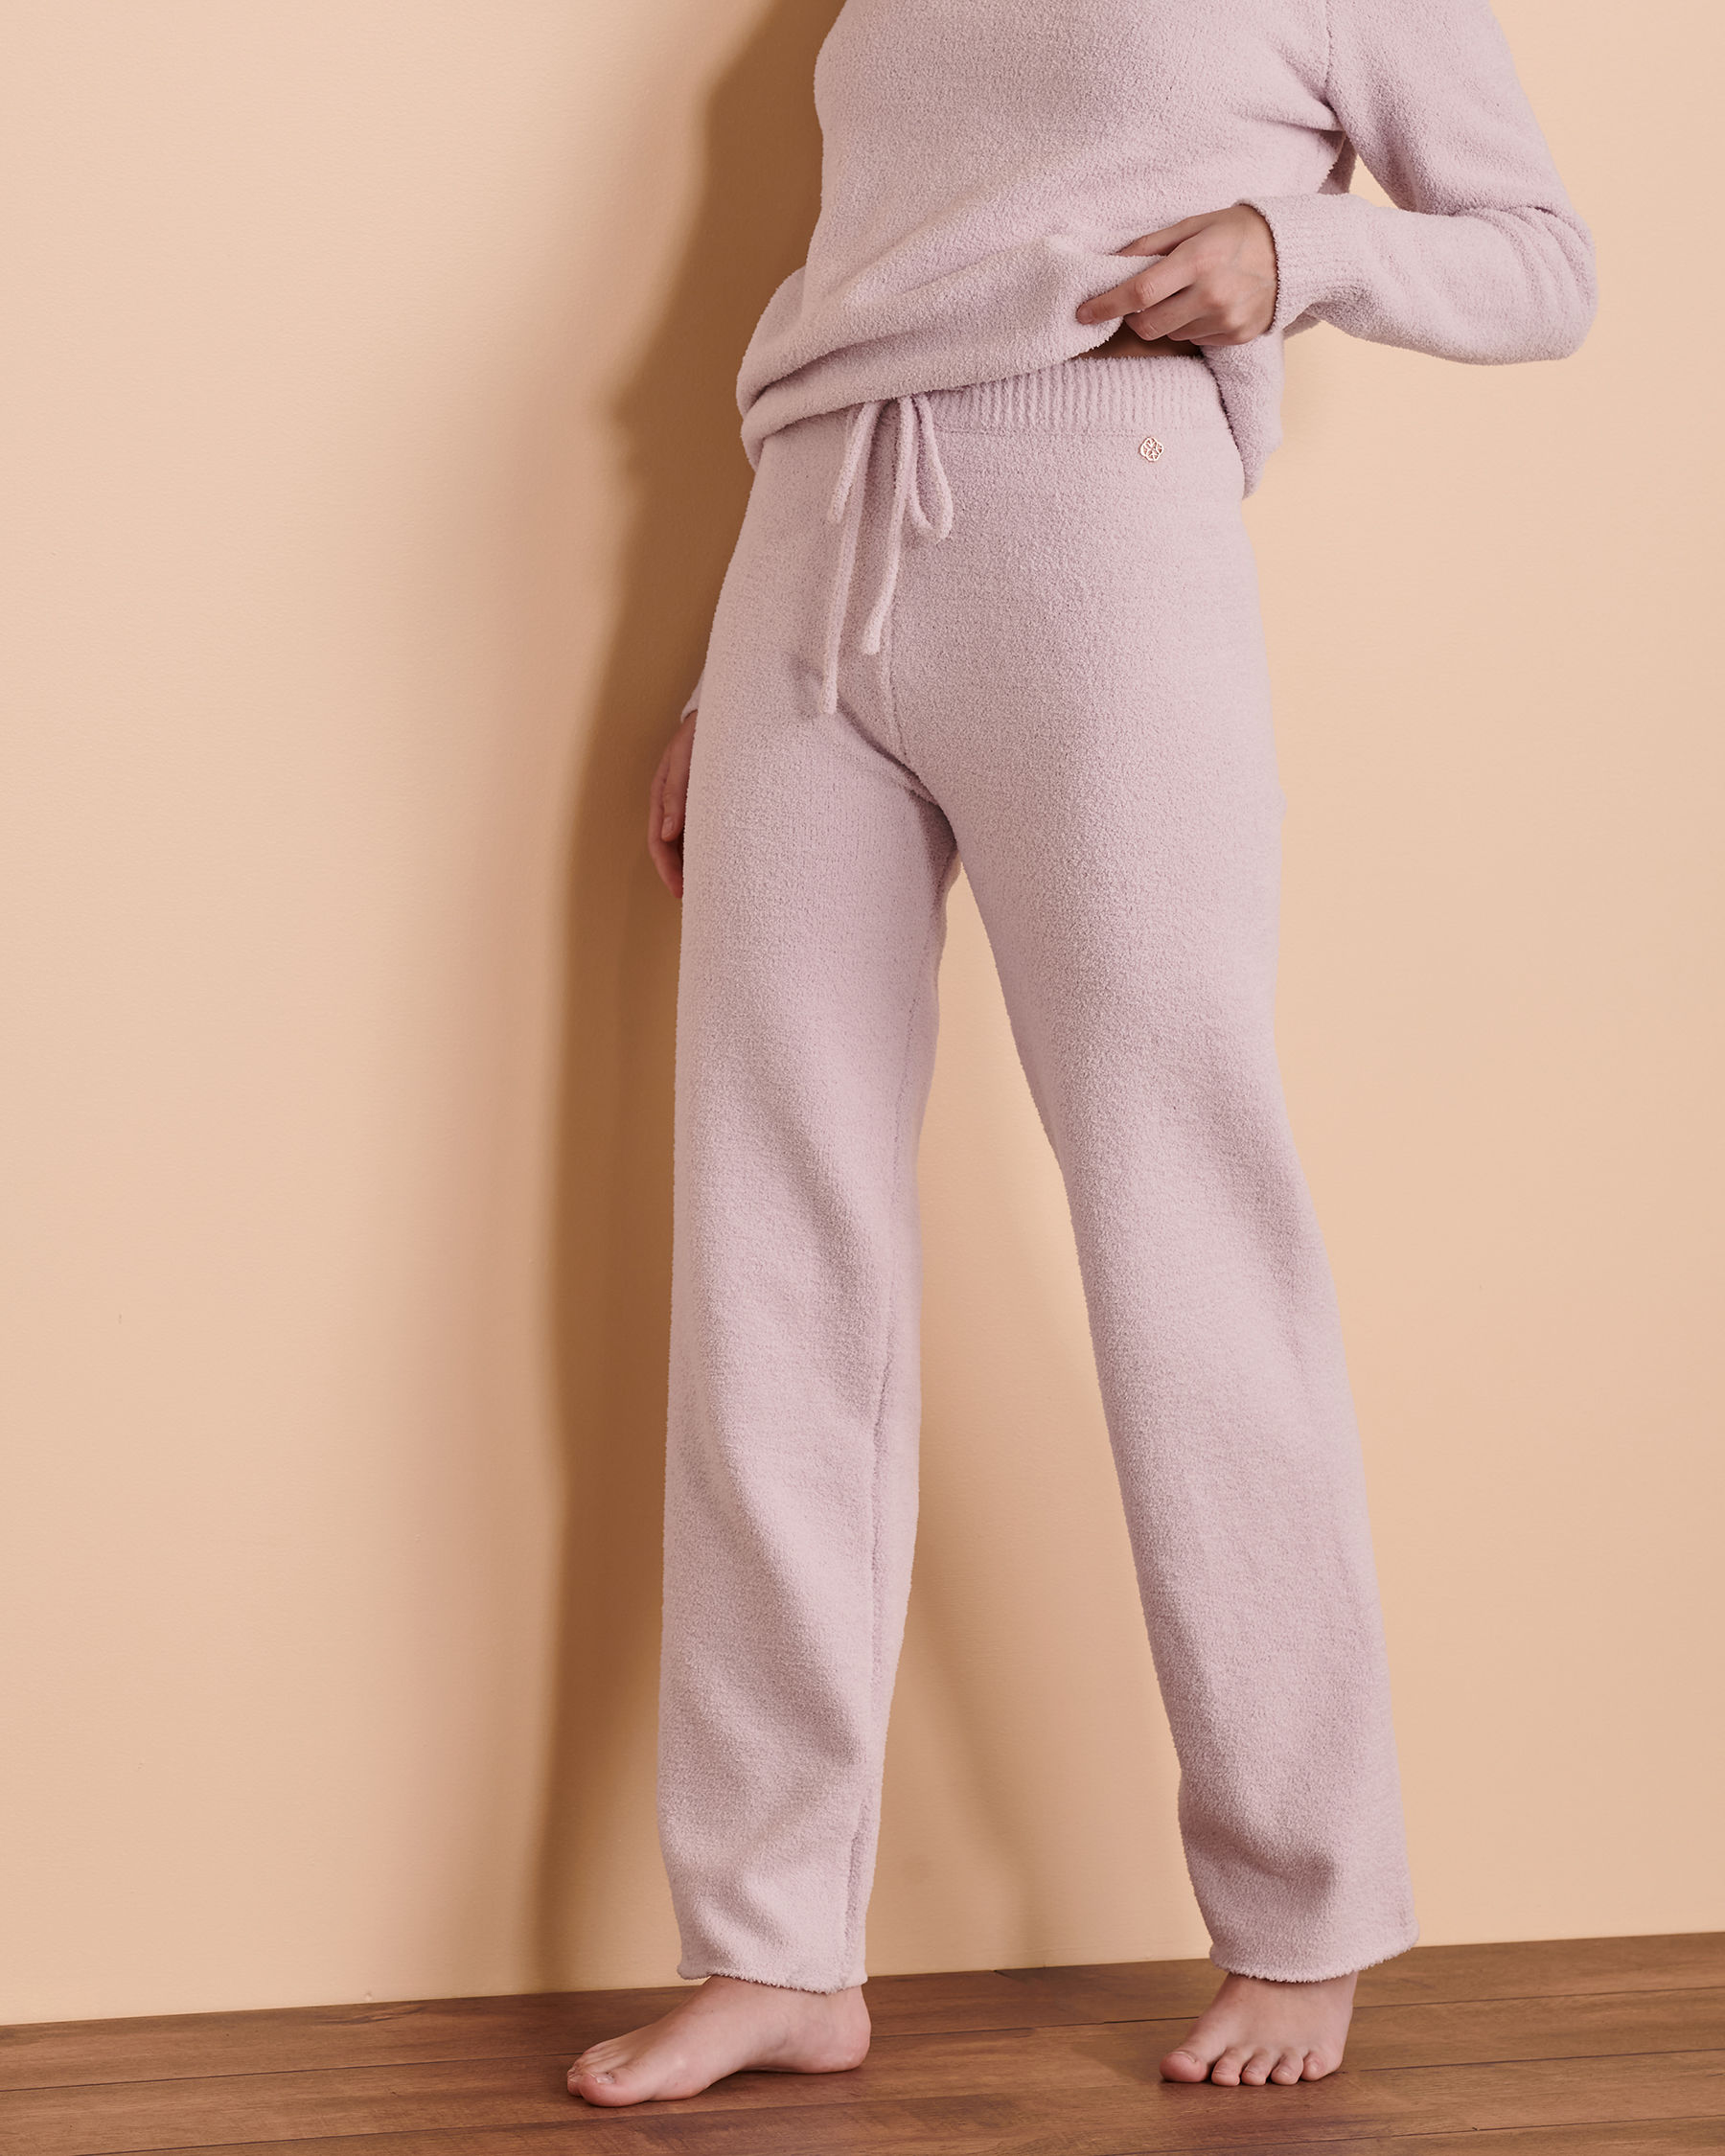 TURQUOISE COUTURE Chenille Lounge Pant Very soft lilac 02200015 - View1